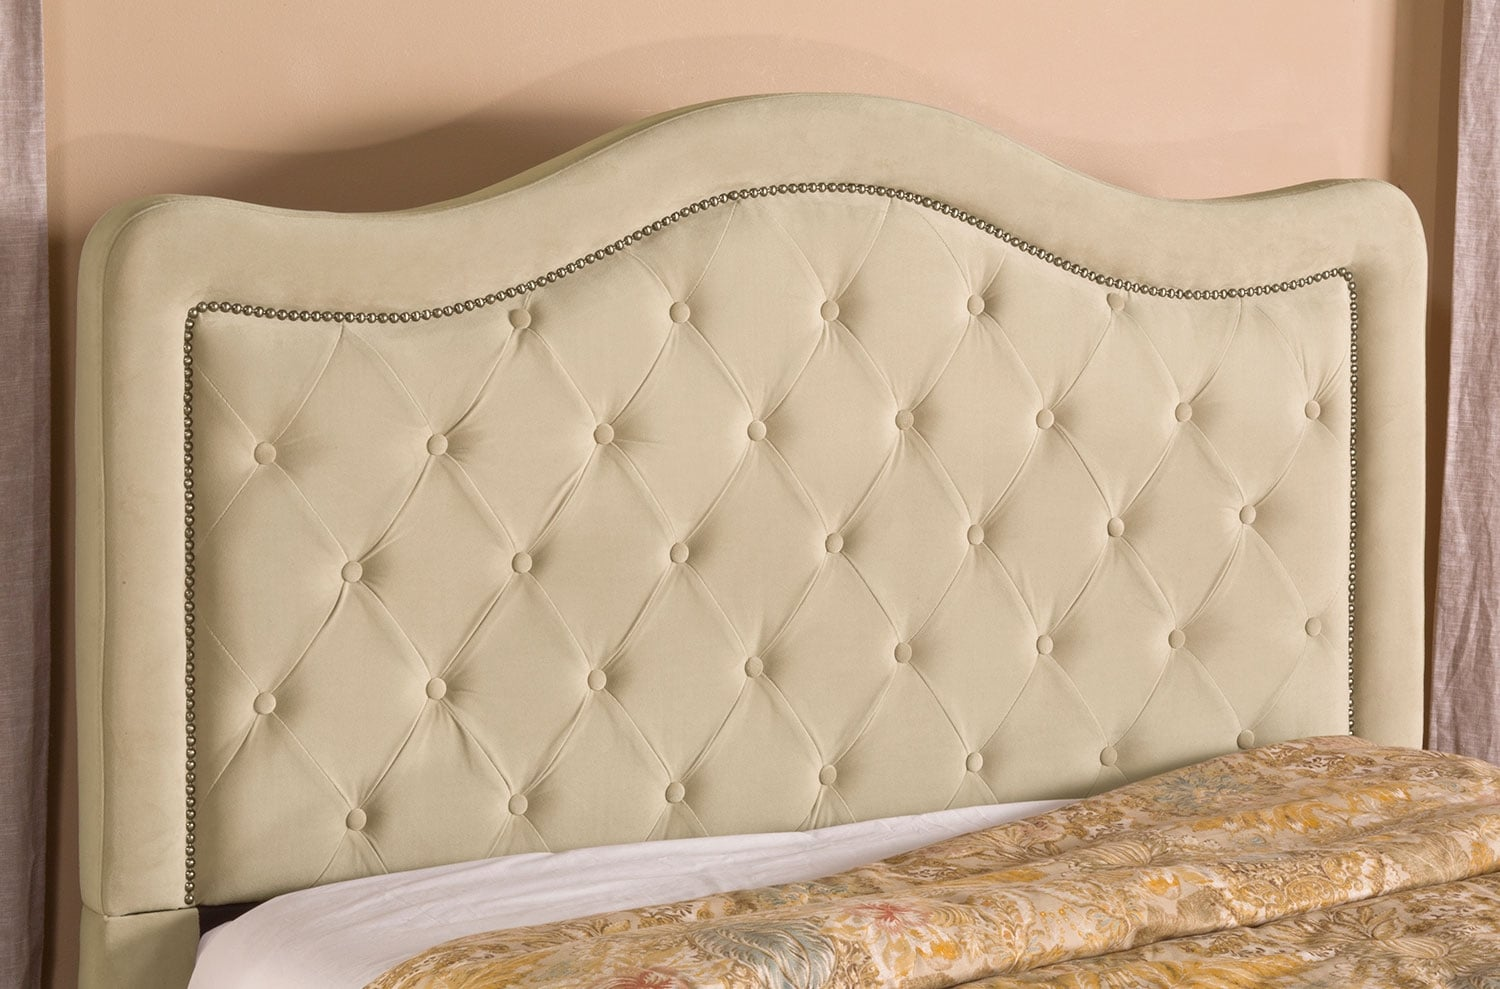 Bedroom Furniture - Tris Queen Upholstered Headboard